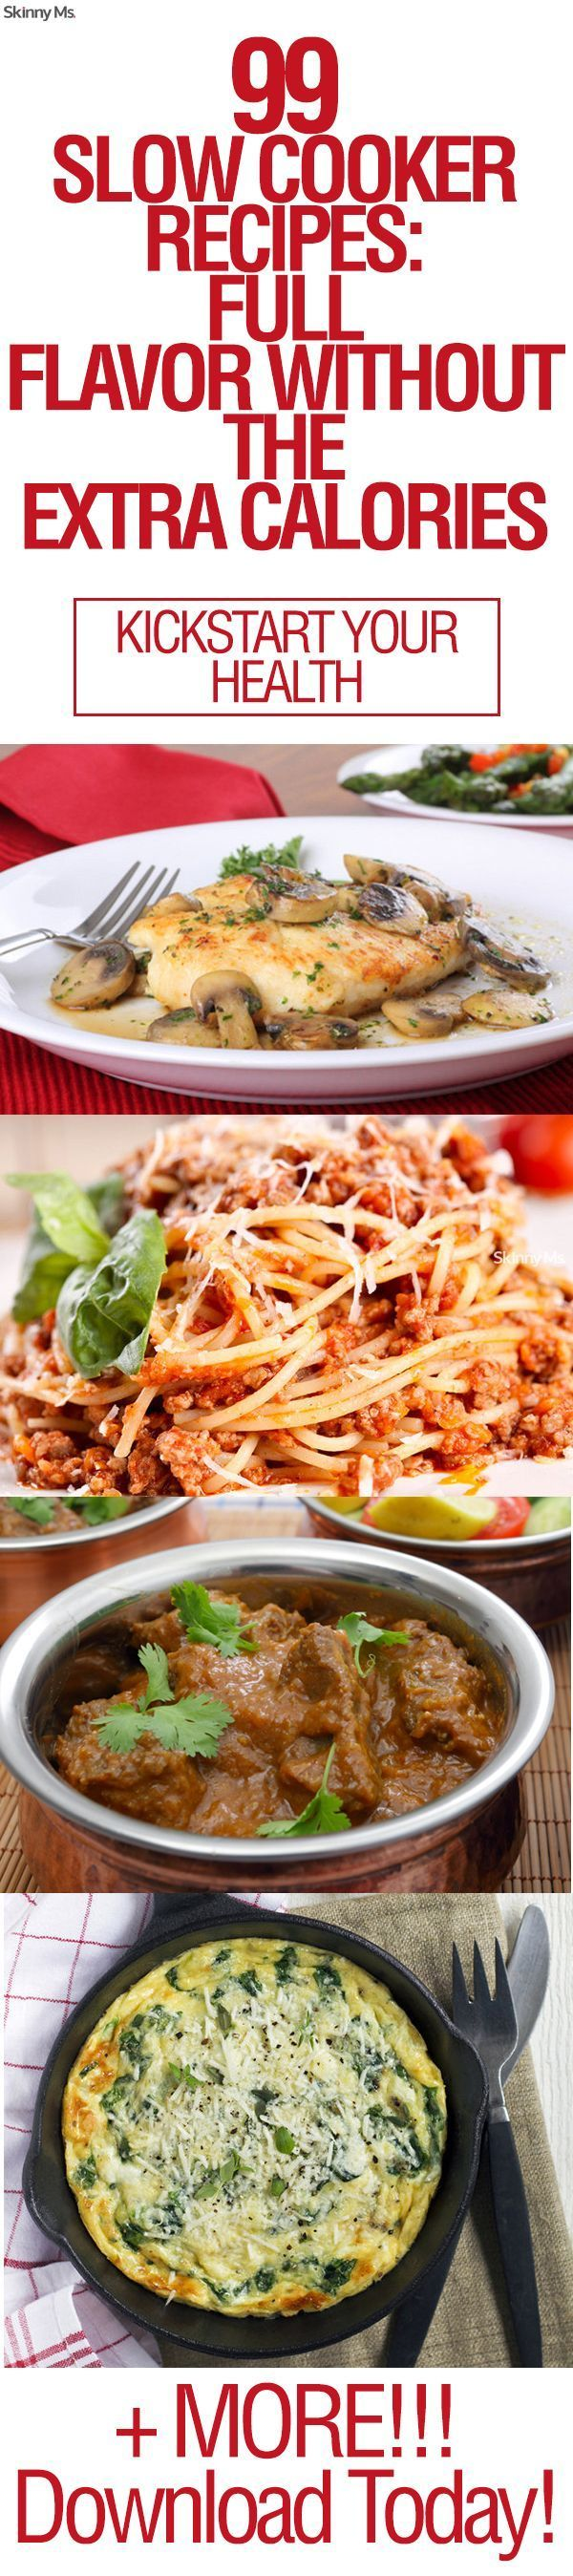 99 Slow Cooker Recipes: Full Flavor Without the Extra Calories. Eating  HabitsEvery DaySlow Cooker RecipesCrock Pot RecipesCrockpot ...